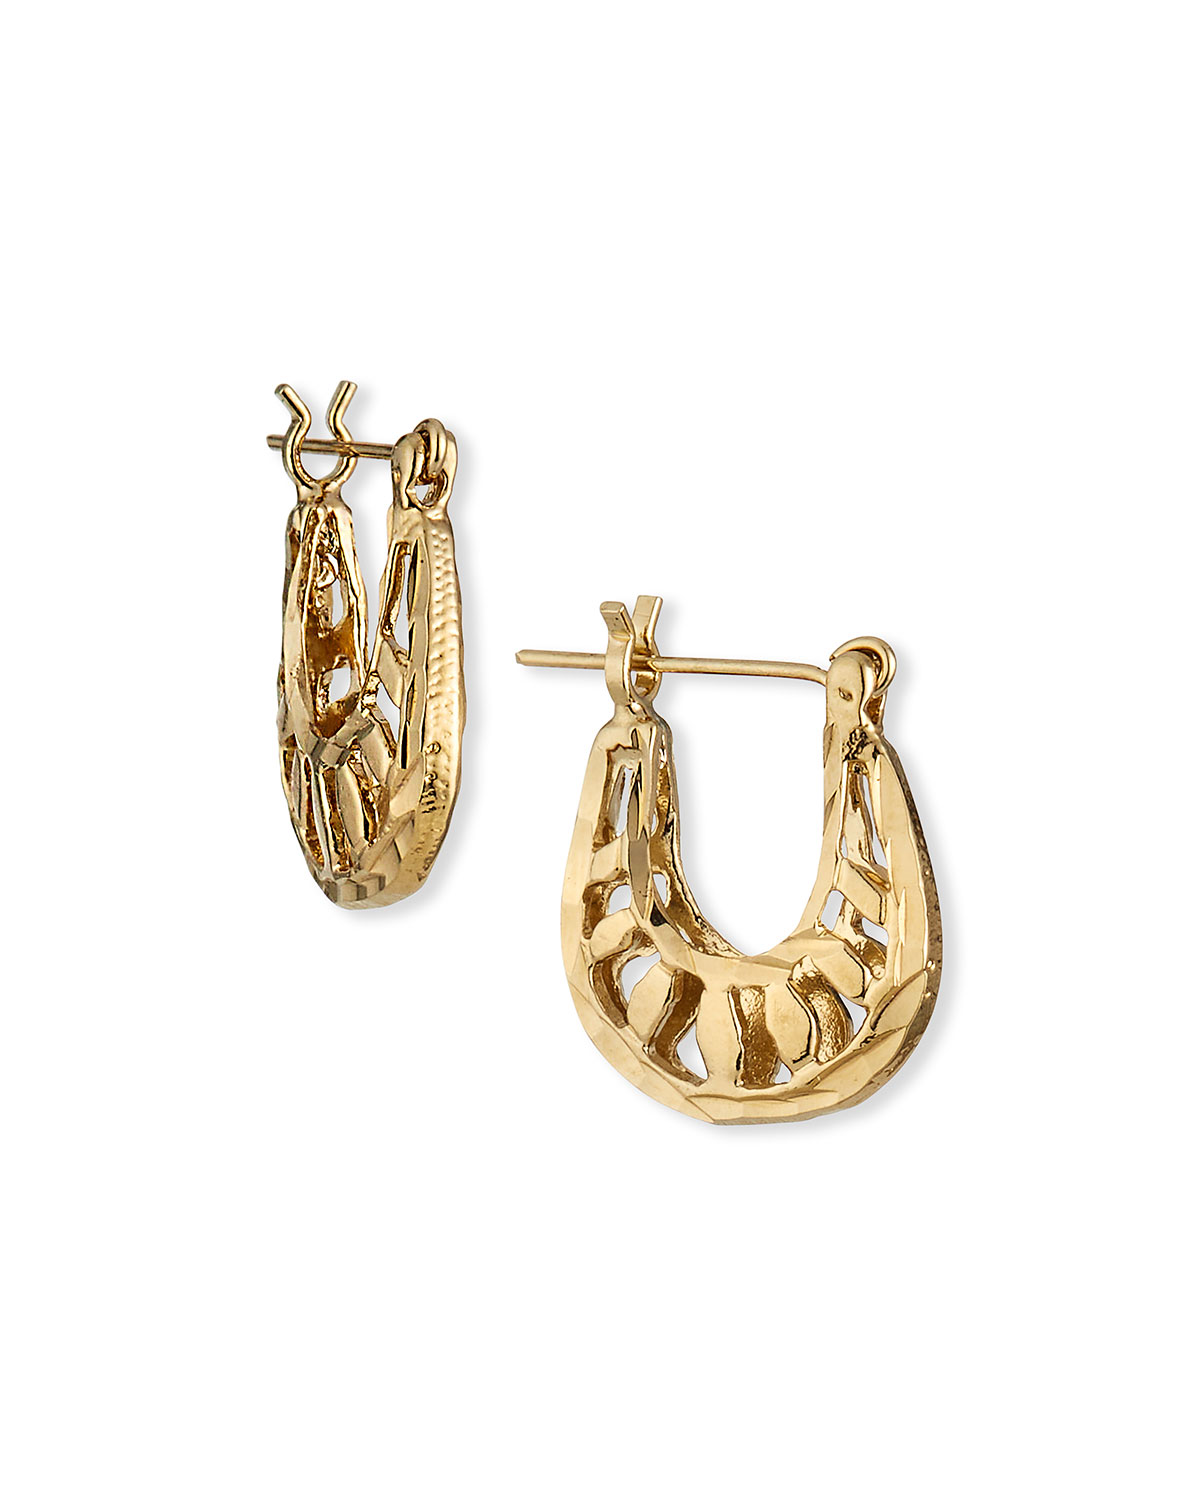 Devon Leigh Small Gold Filigree Hoop Post Earrings